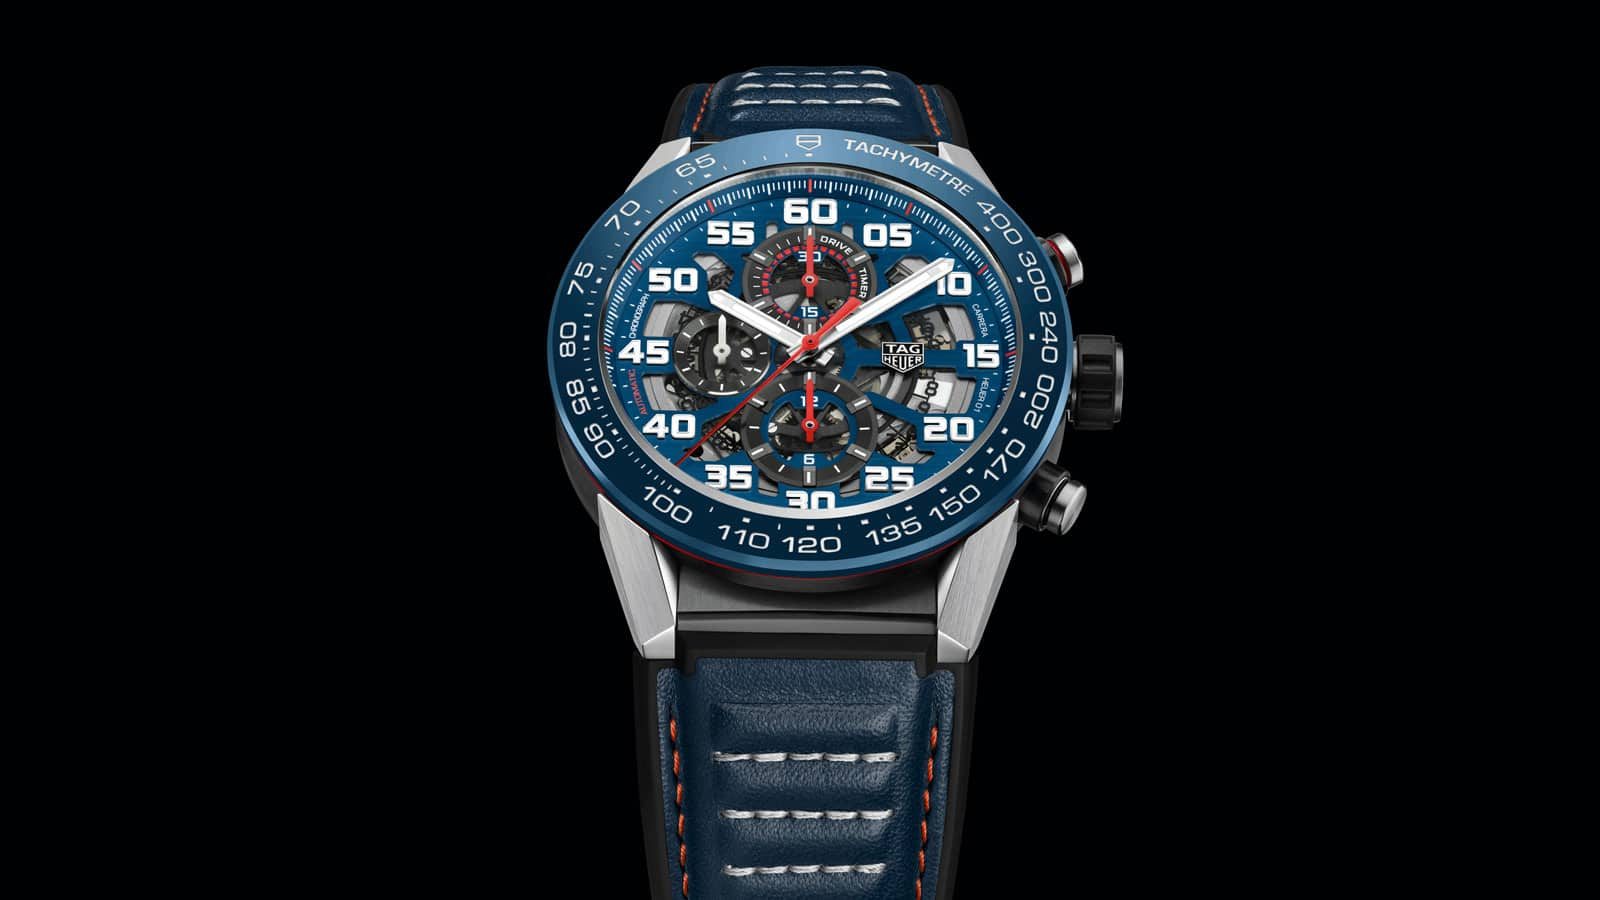 Montre-TAG-Heuer-Carrera-Heuer-01-Red-Bull-Racing-CAR2A1N-Lionel-Meylan-horlogerie-joaillerie-vevey